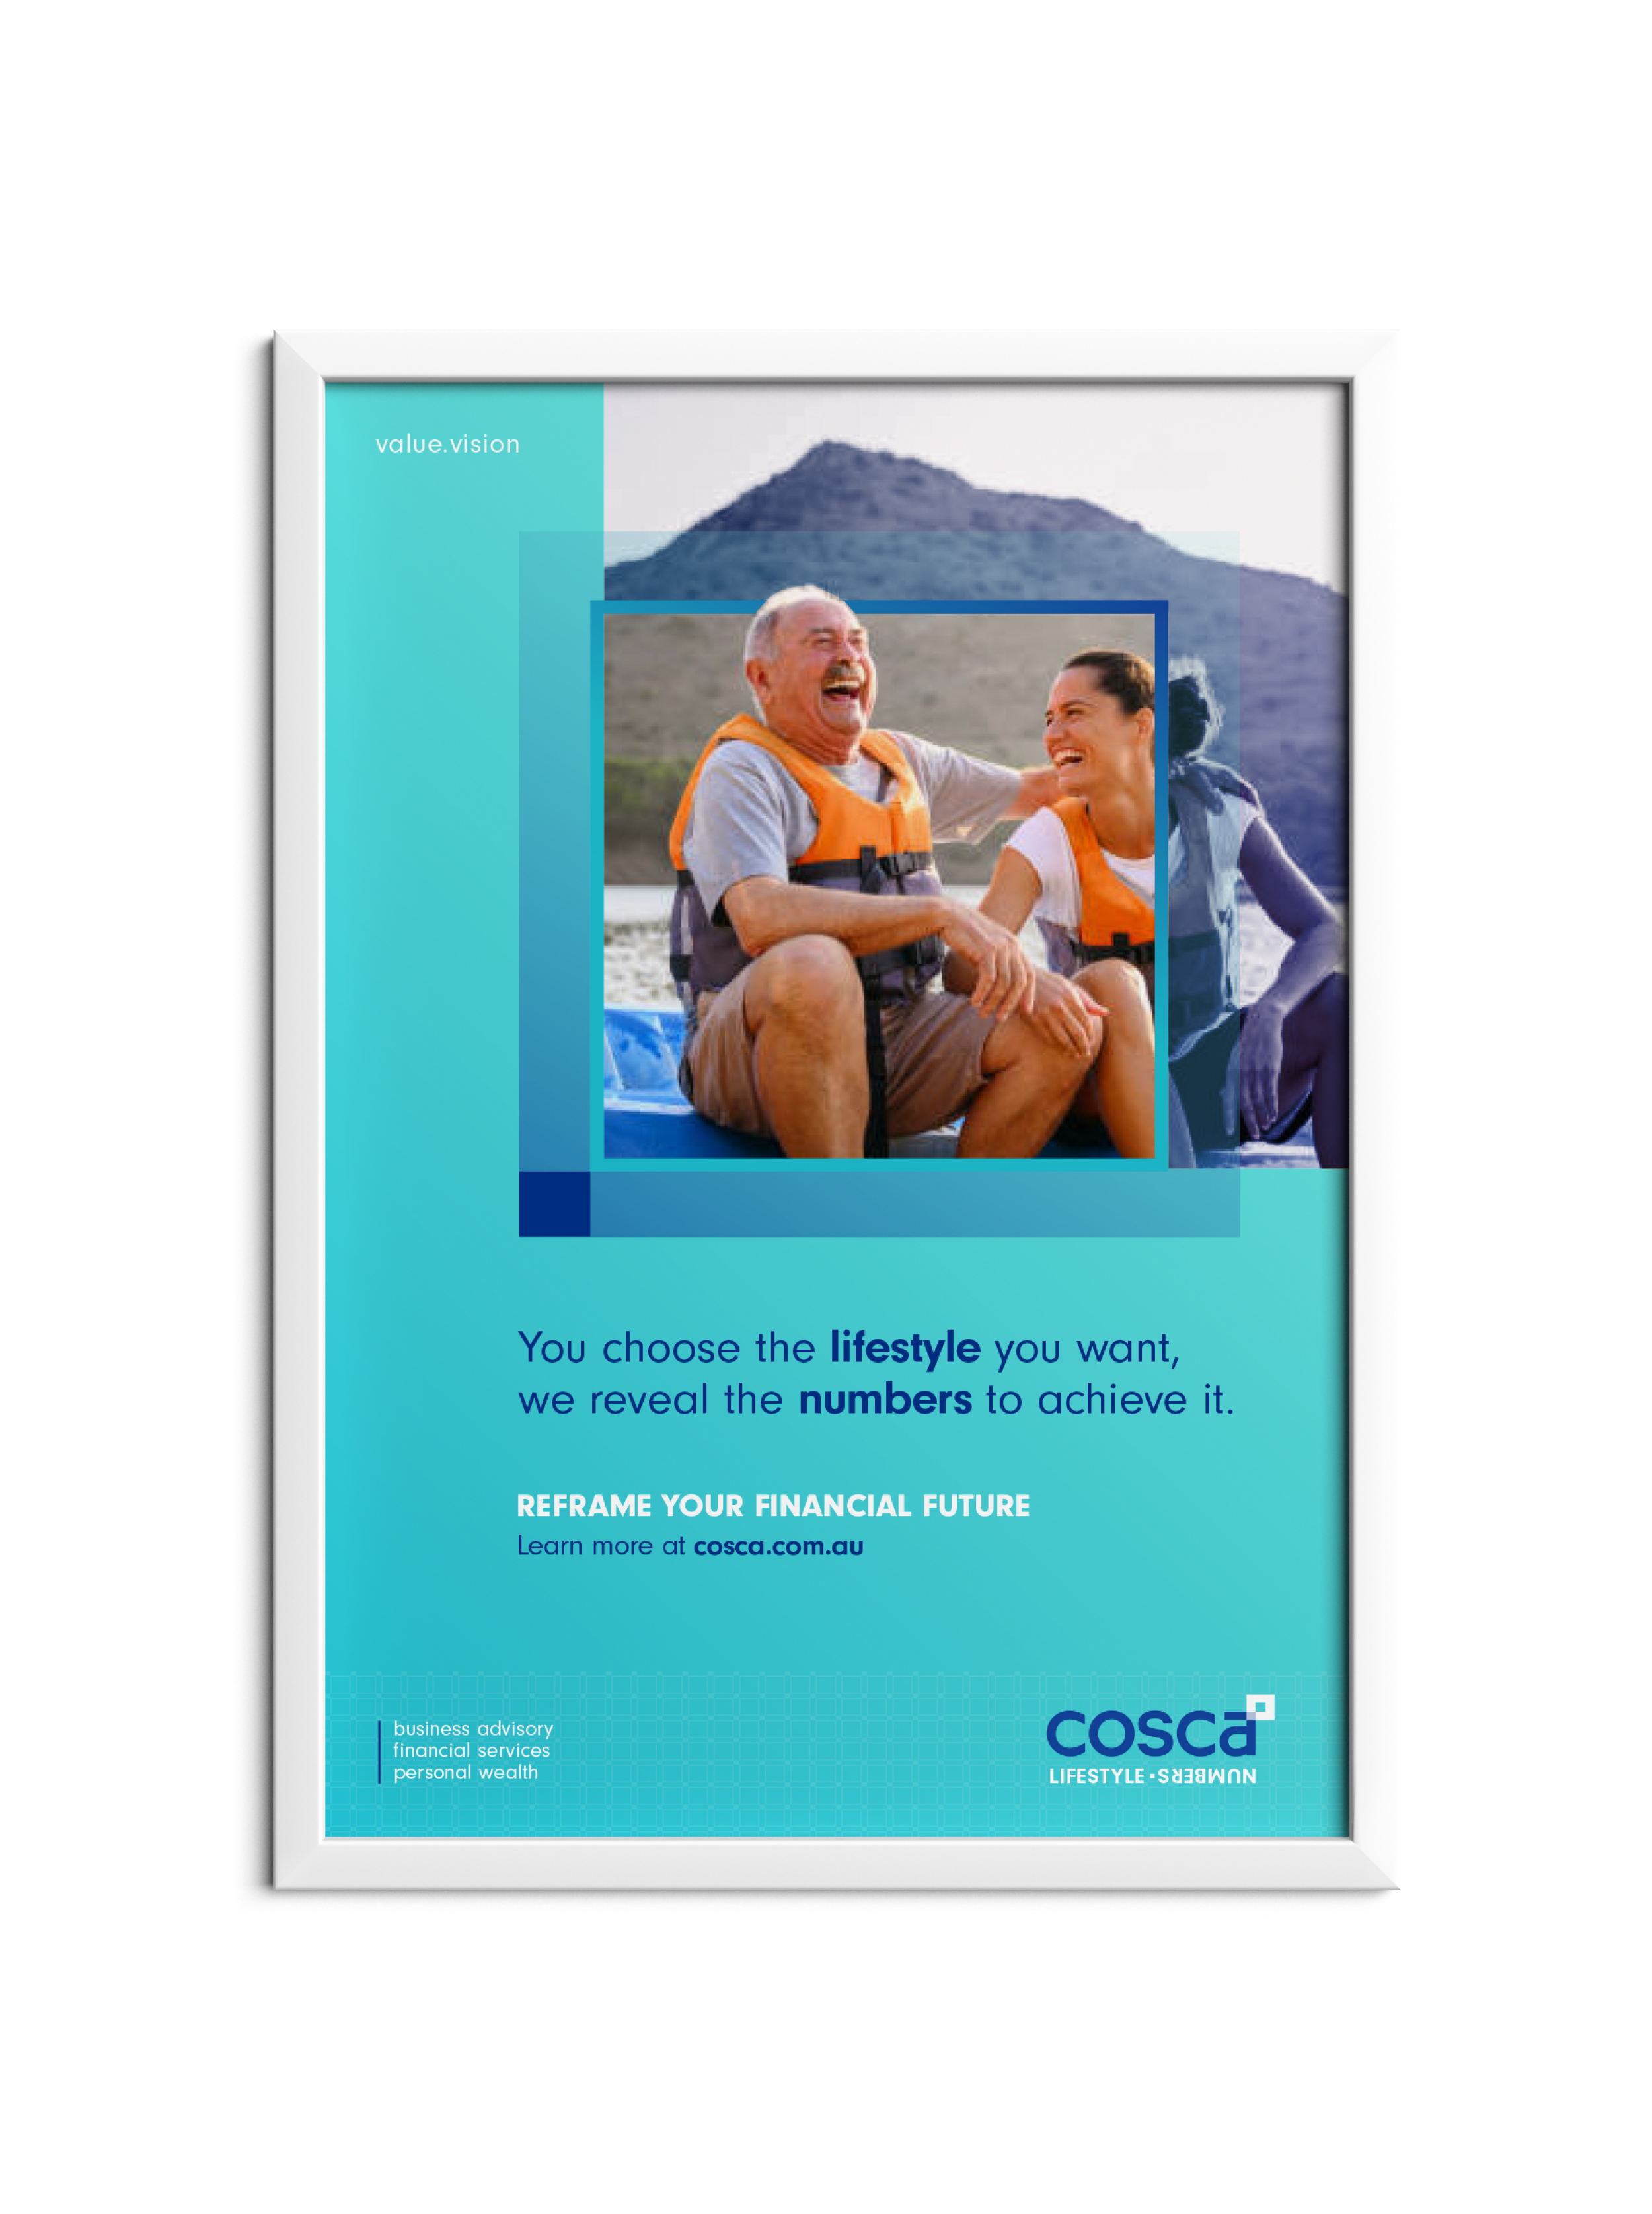 Poster collateral design for target market of retirees